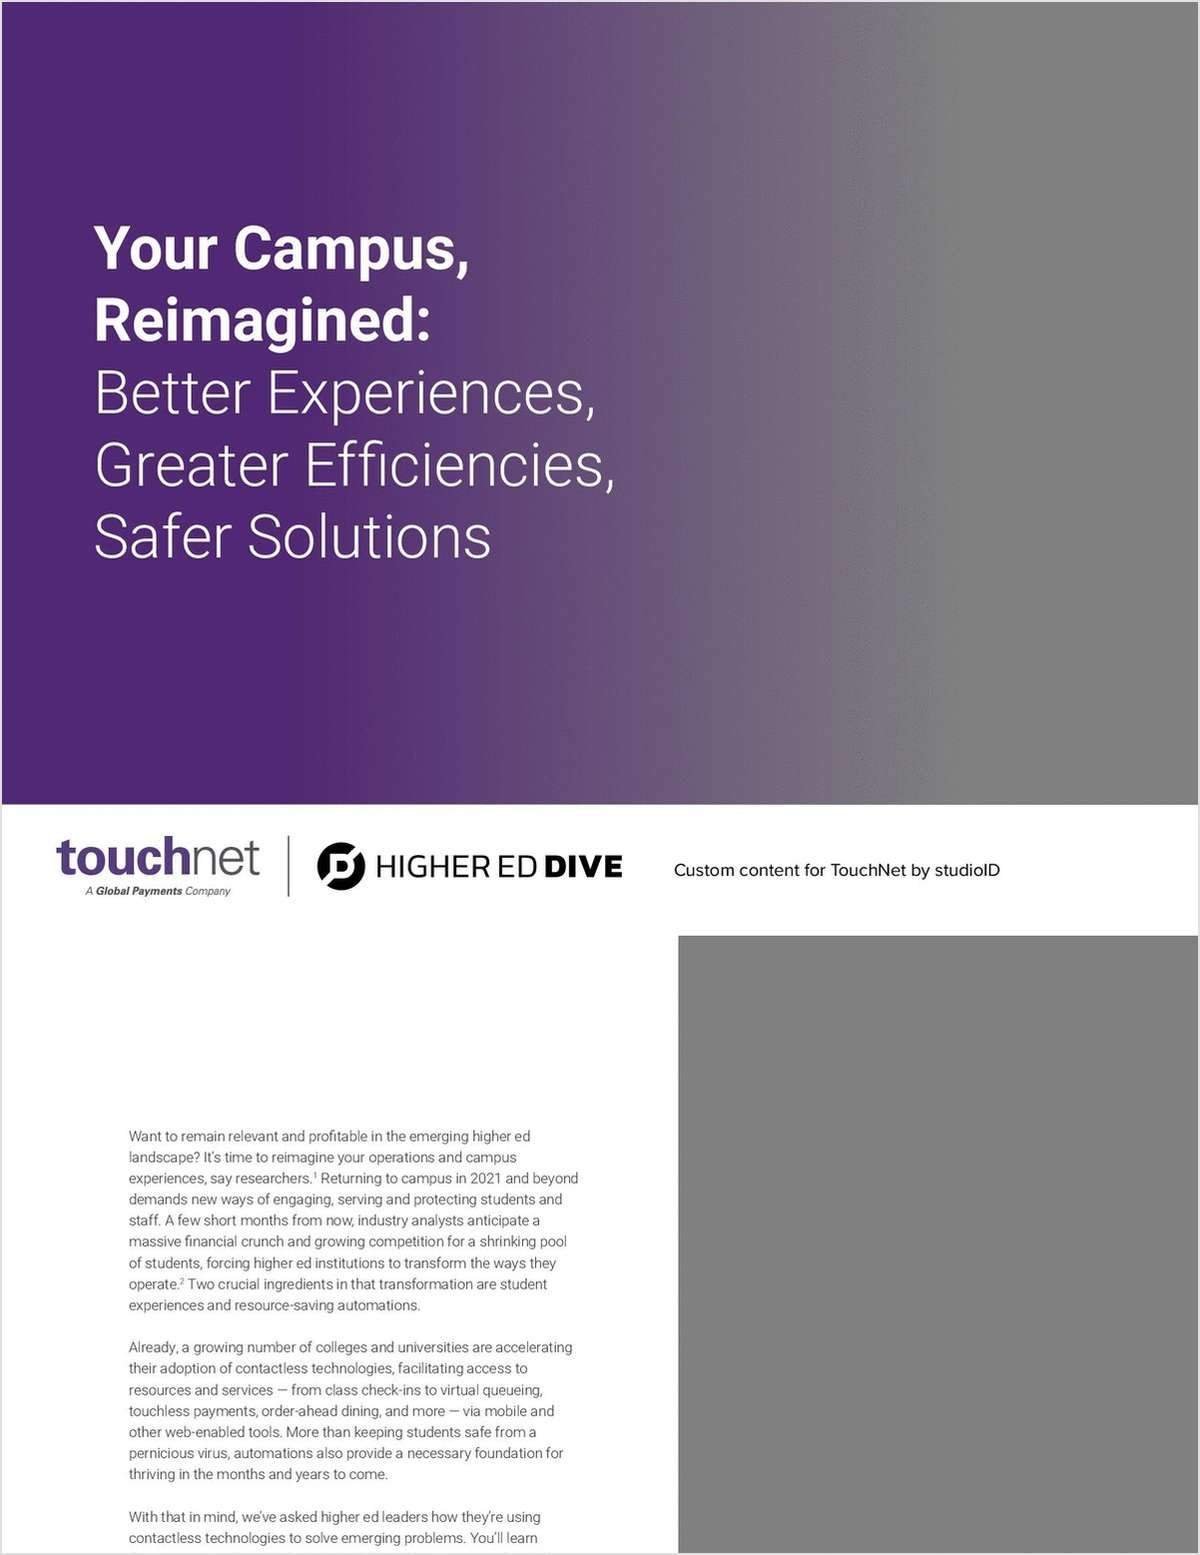 Your Campus, Reimagined: Better Experiences, Greater Efficiencies, Safer Solutions